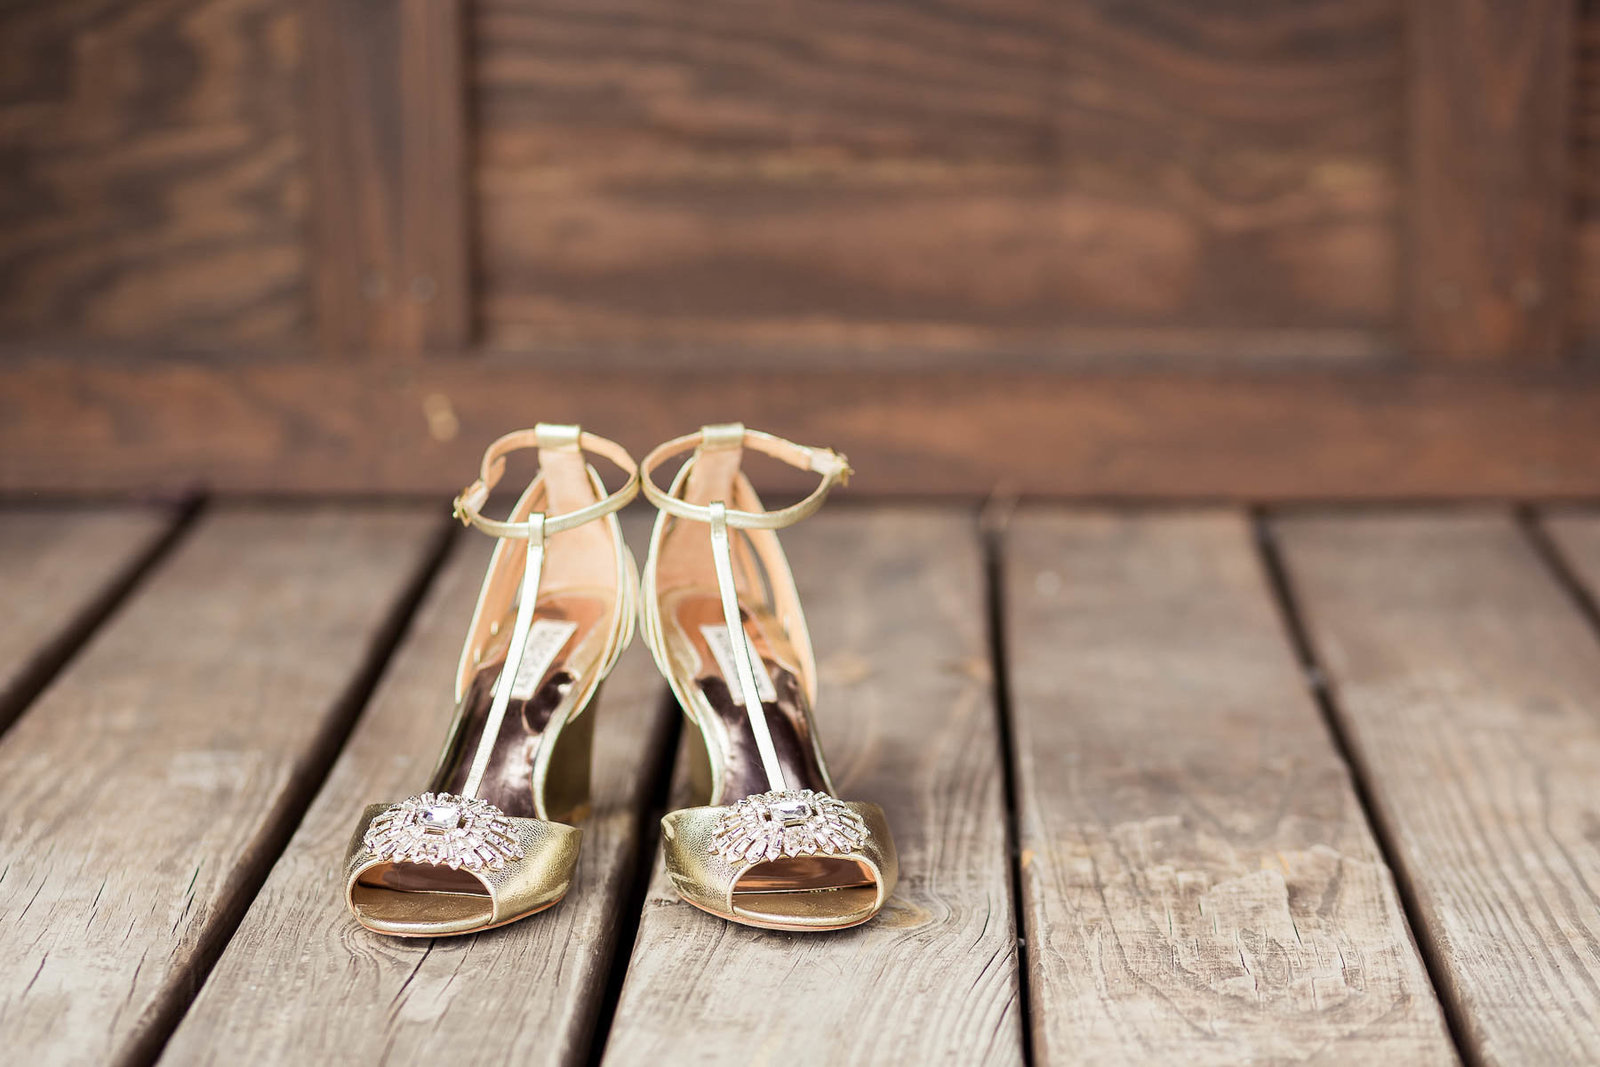 Bride's shoes sit on wooden floor, Boals Farm, Charleston, South Carolina